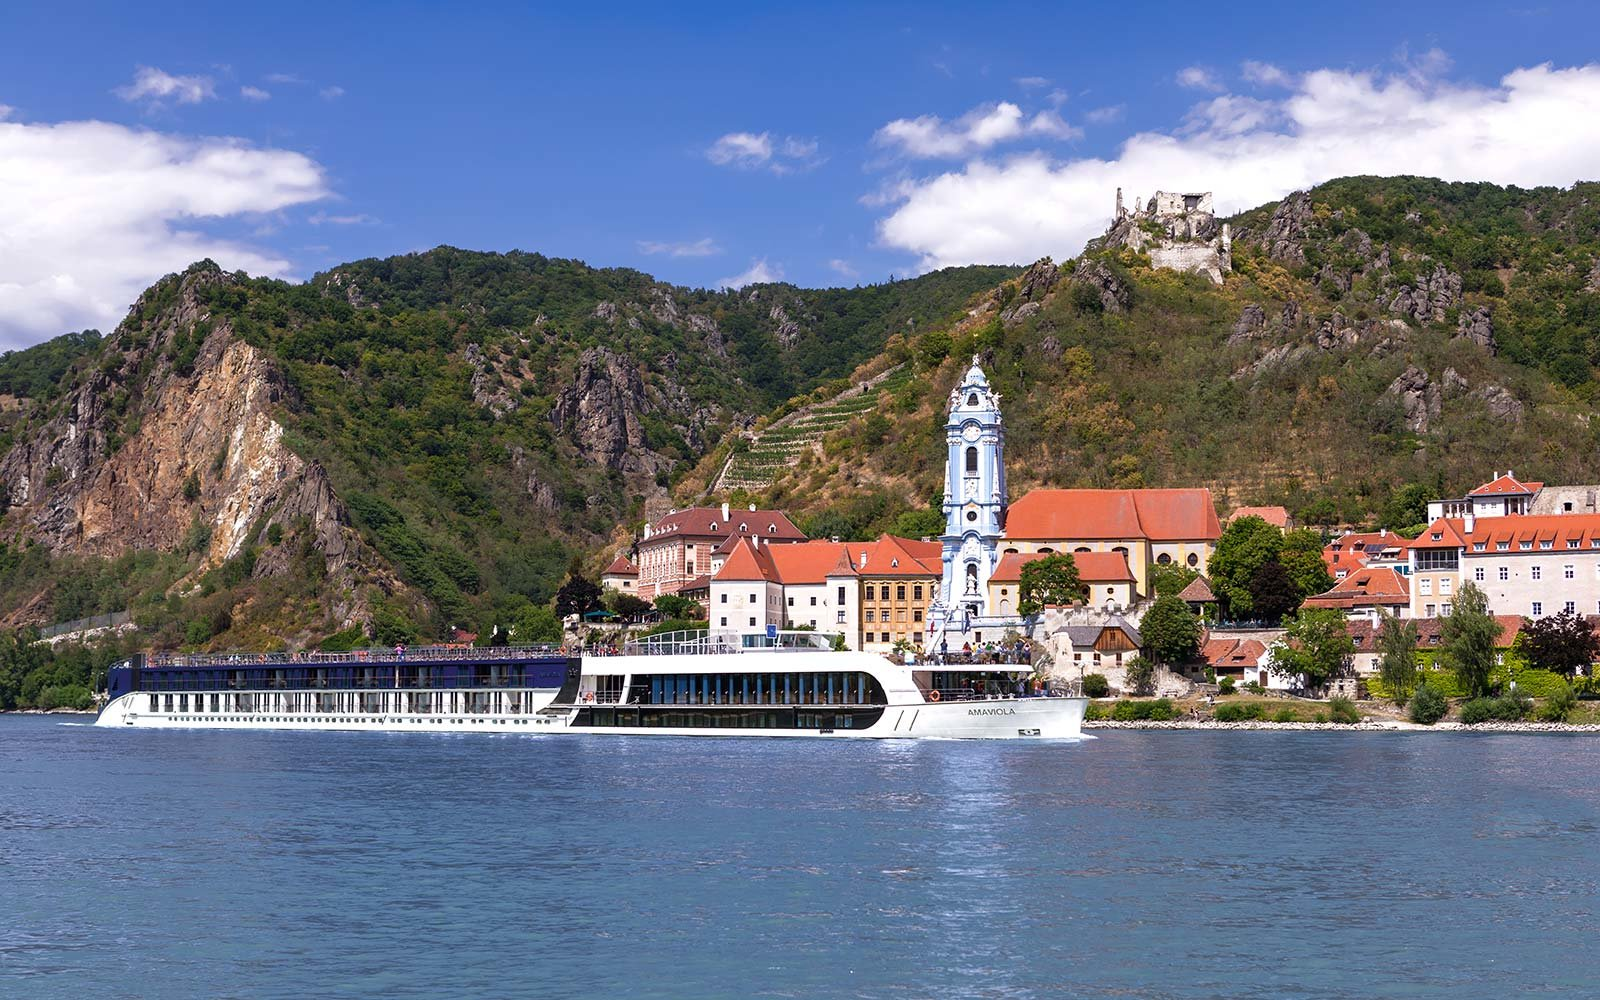 Amawaterways, AmaViola